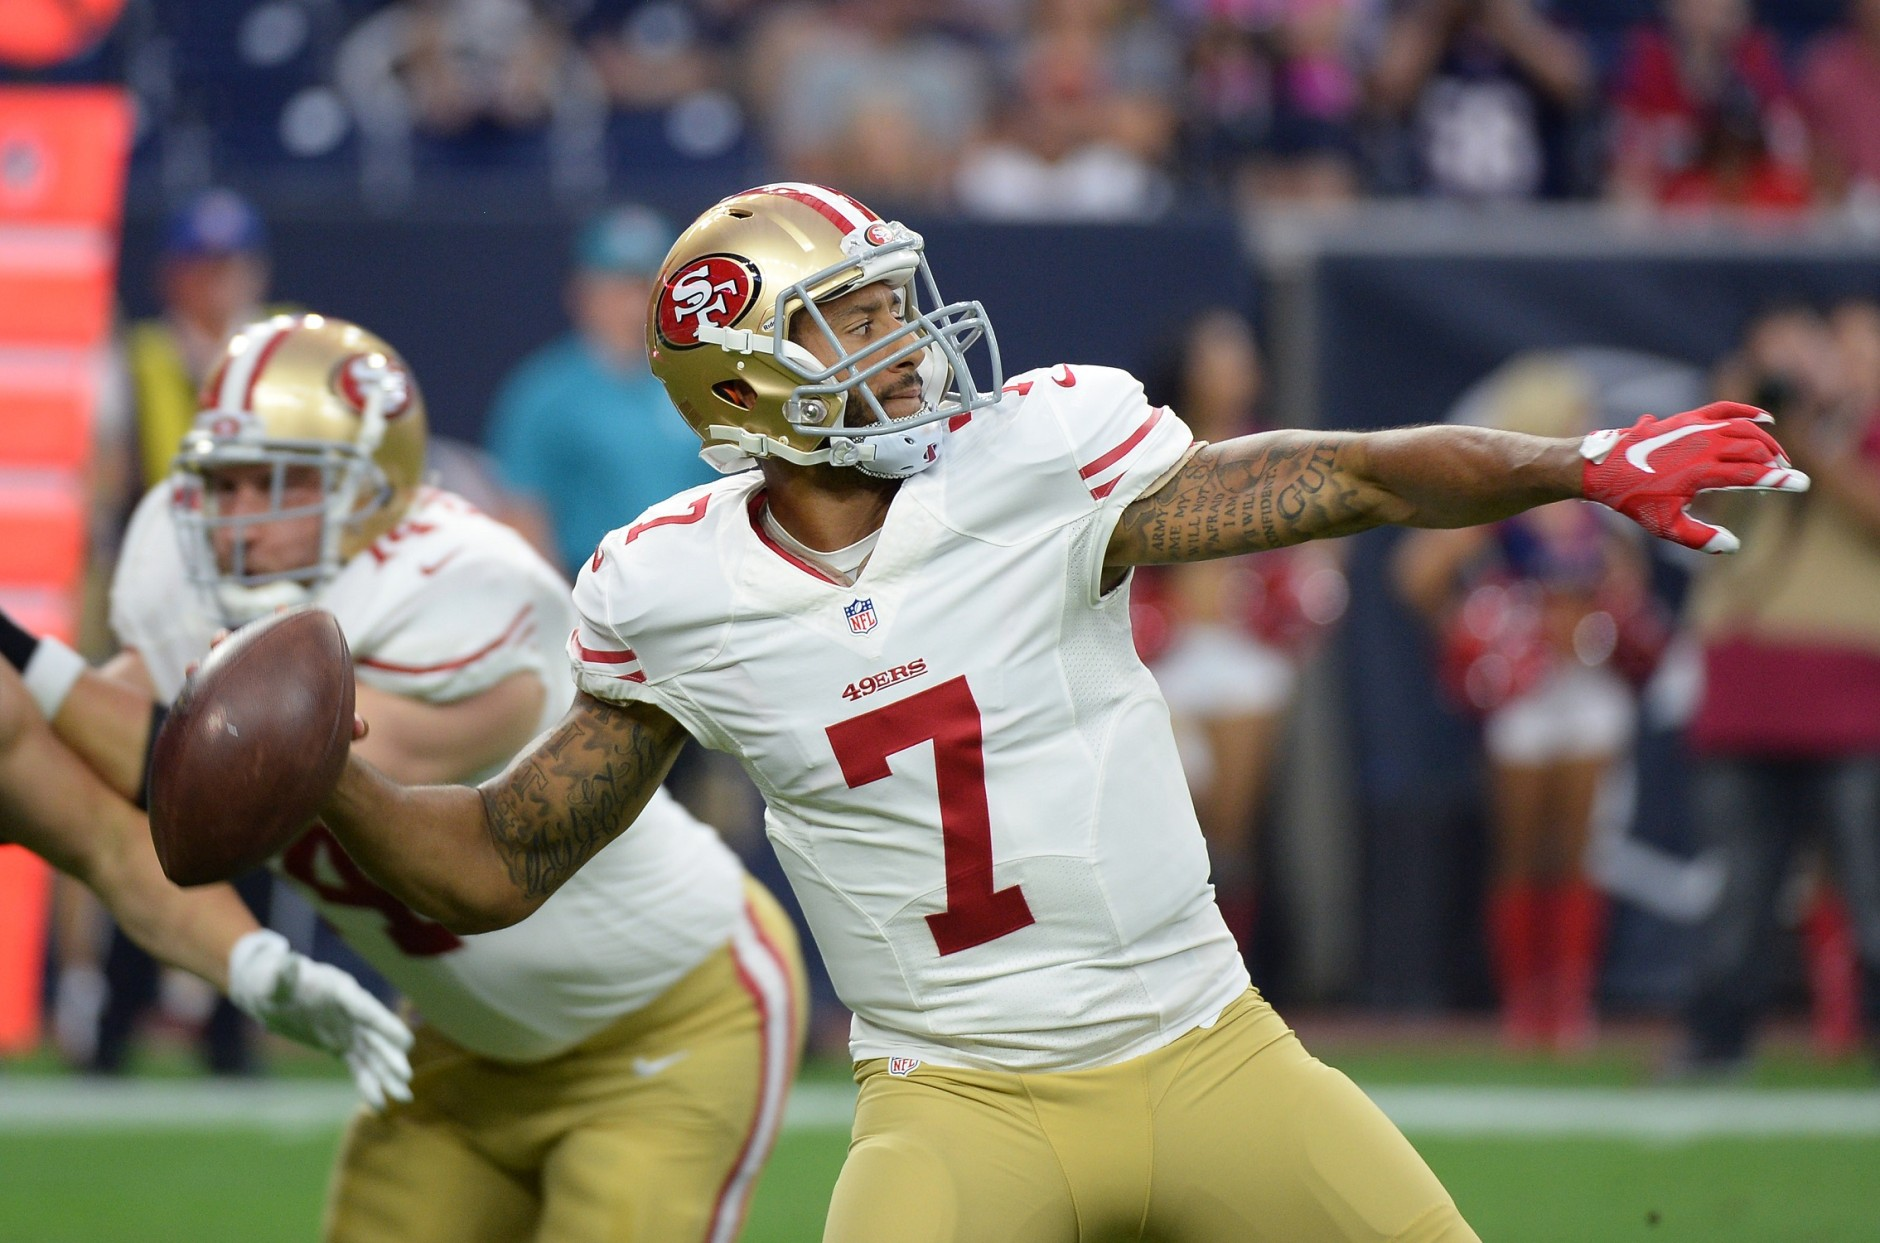 San Francisco 49ers' Colin Kaepernick (7) throws against the San Francisco 49ers during the first half of an NFL preseason football game, Saturday, Aug. 15, 2015, in Houston. (AP Photo/George Bridges)